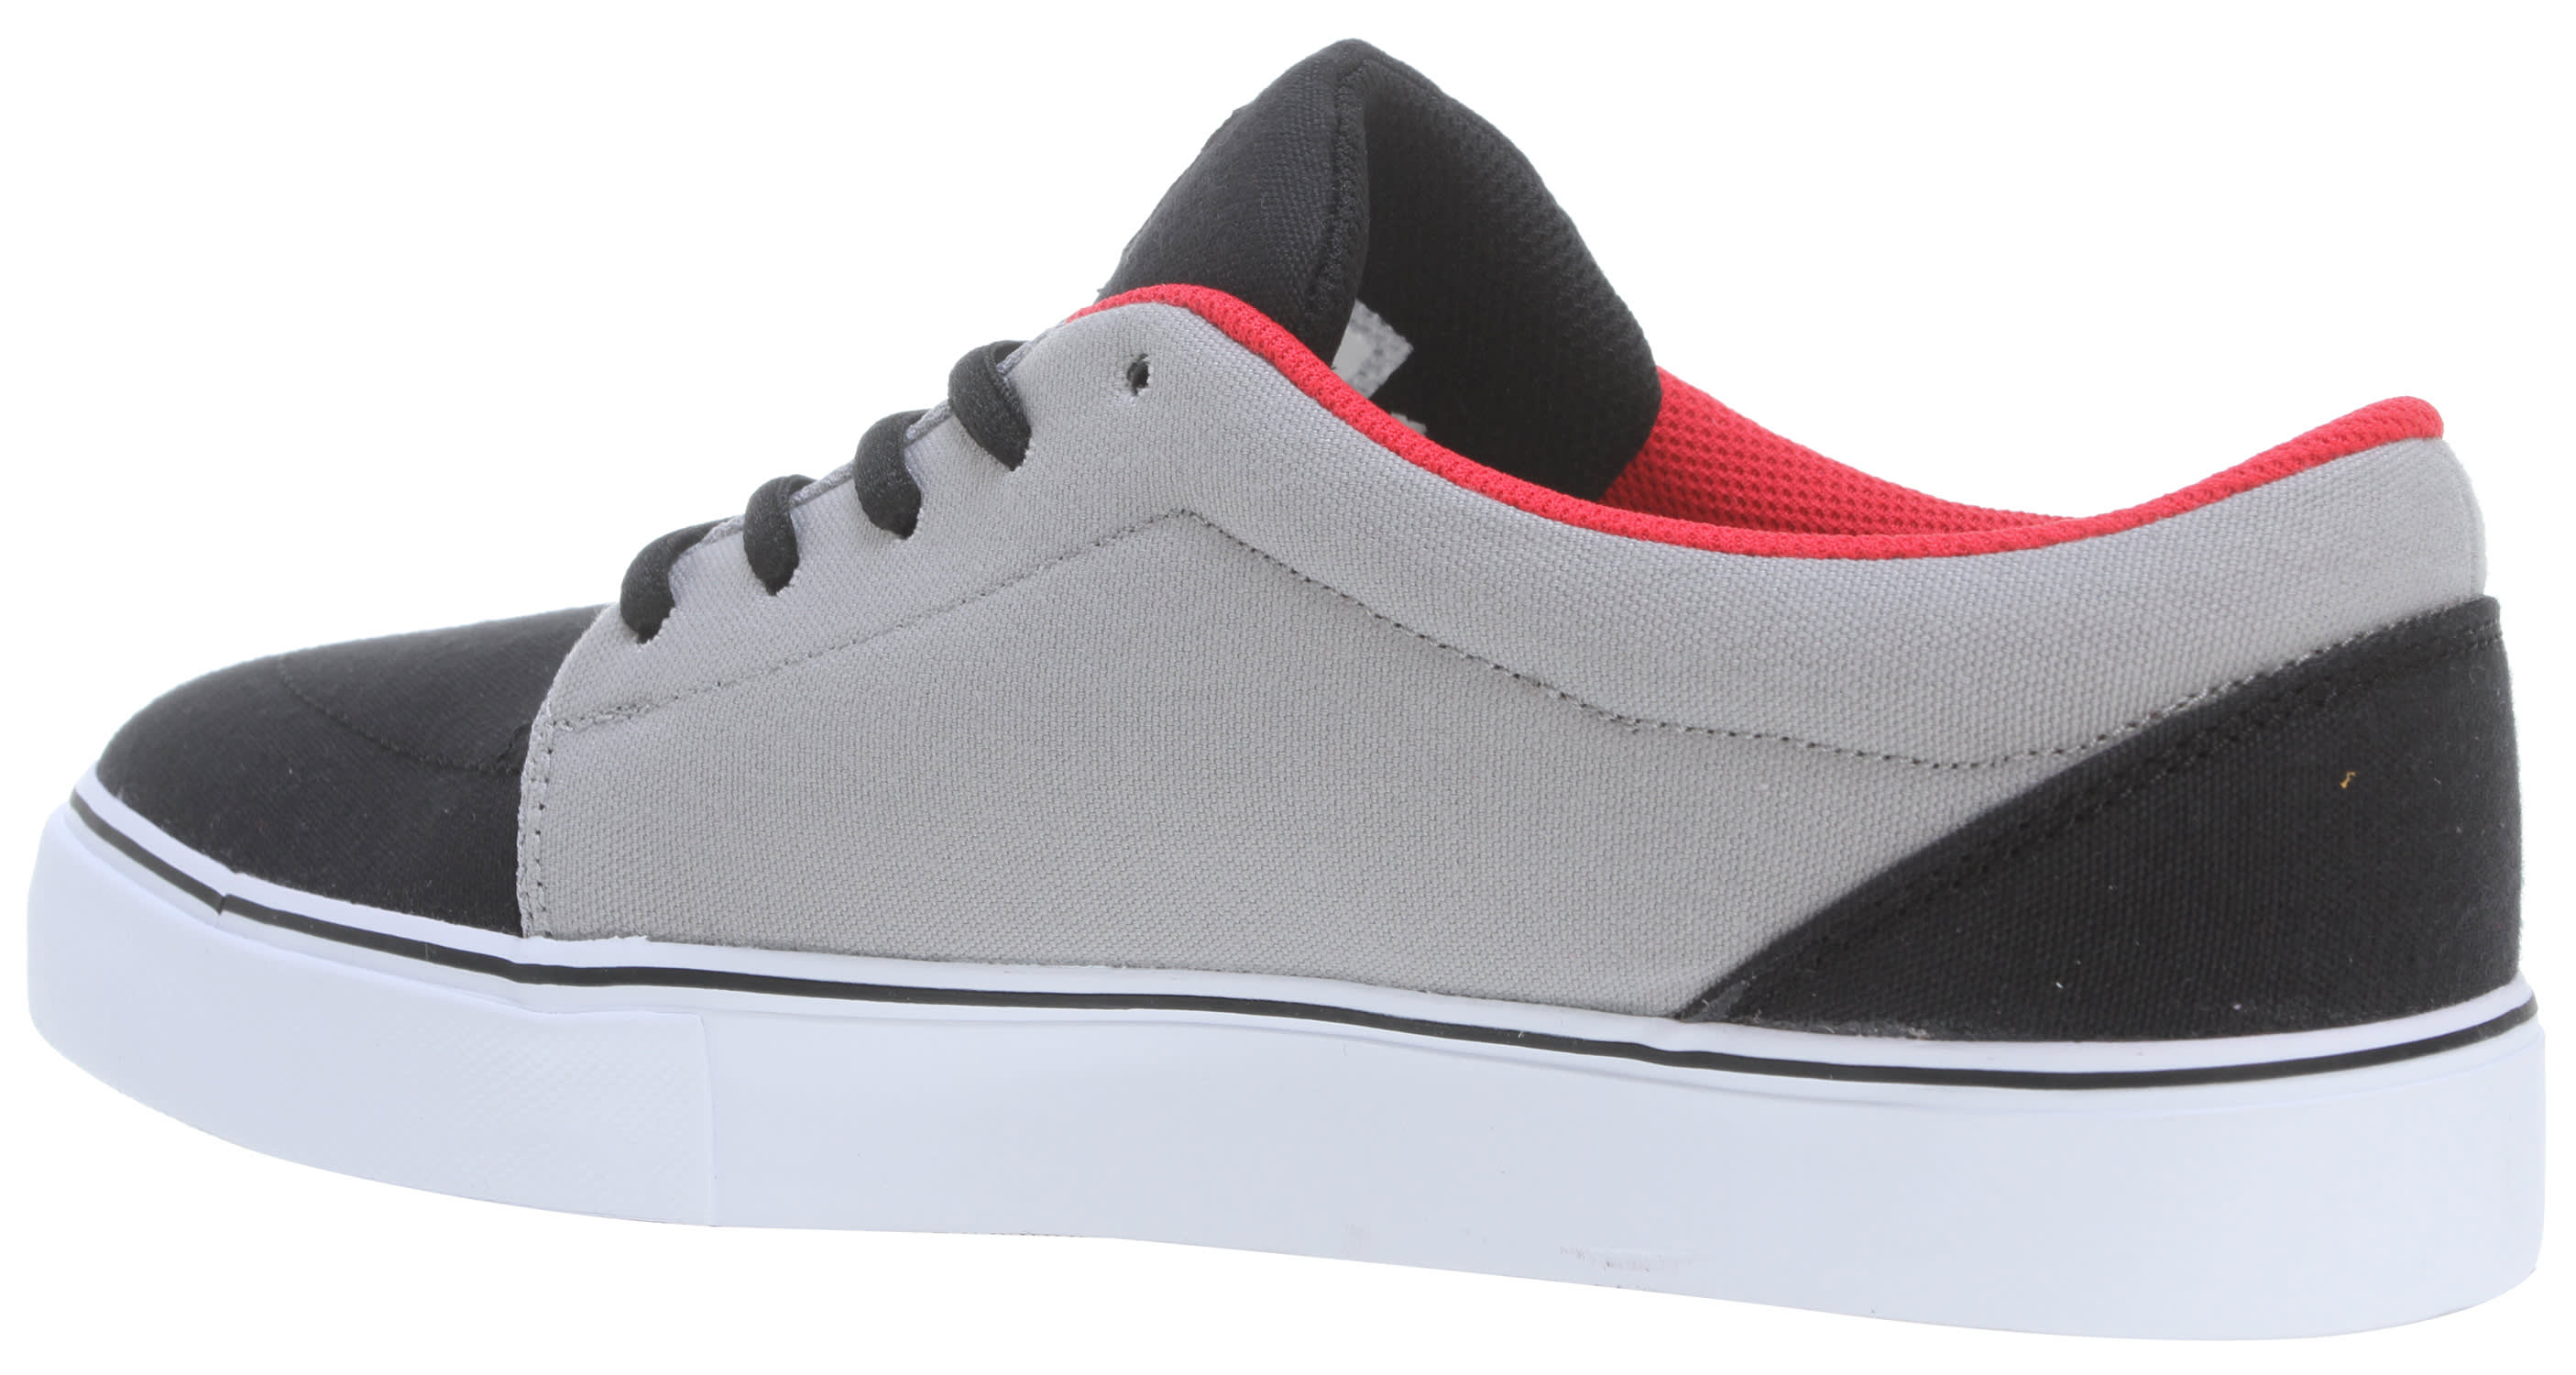 on sale nike satire canvas skate shoes up to 55